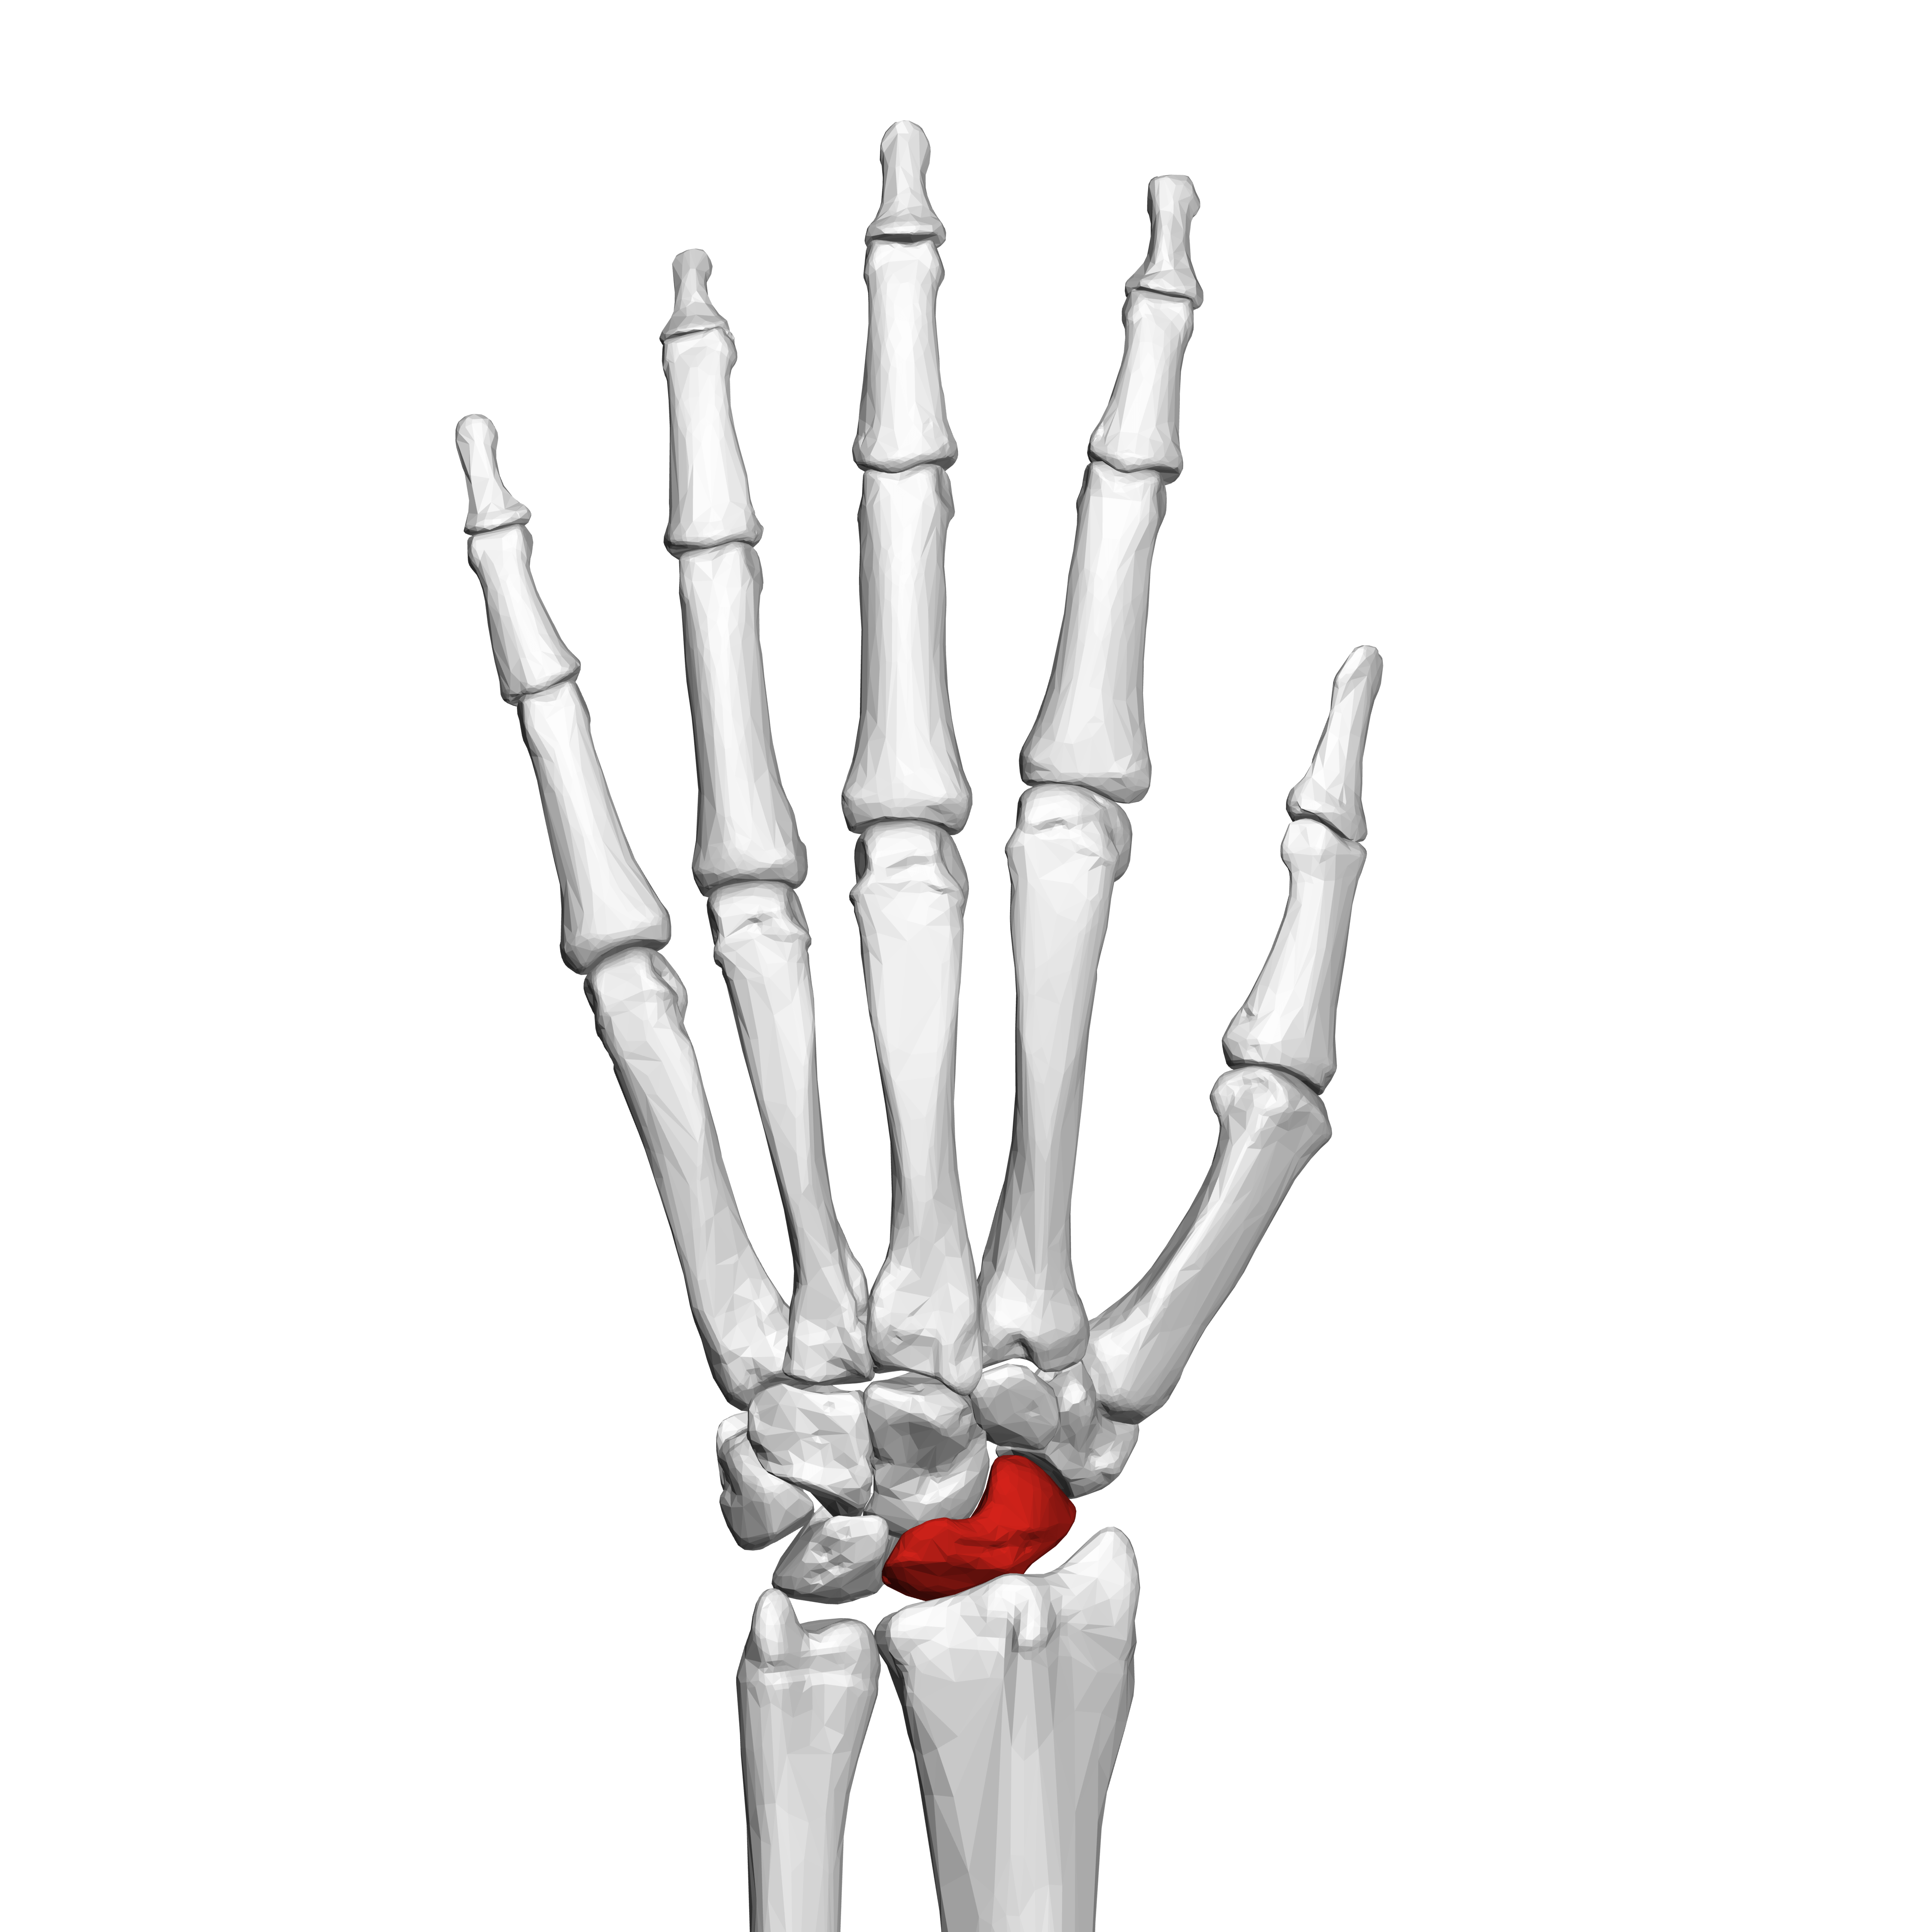 wrist and hand unlabeled diagram 6 5 onan generator wiring file scaphoid bone left 02 dorsal view png